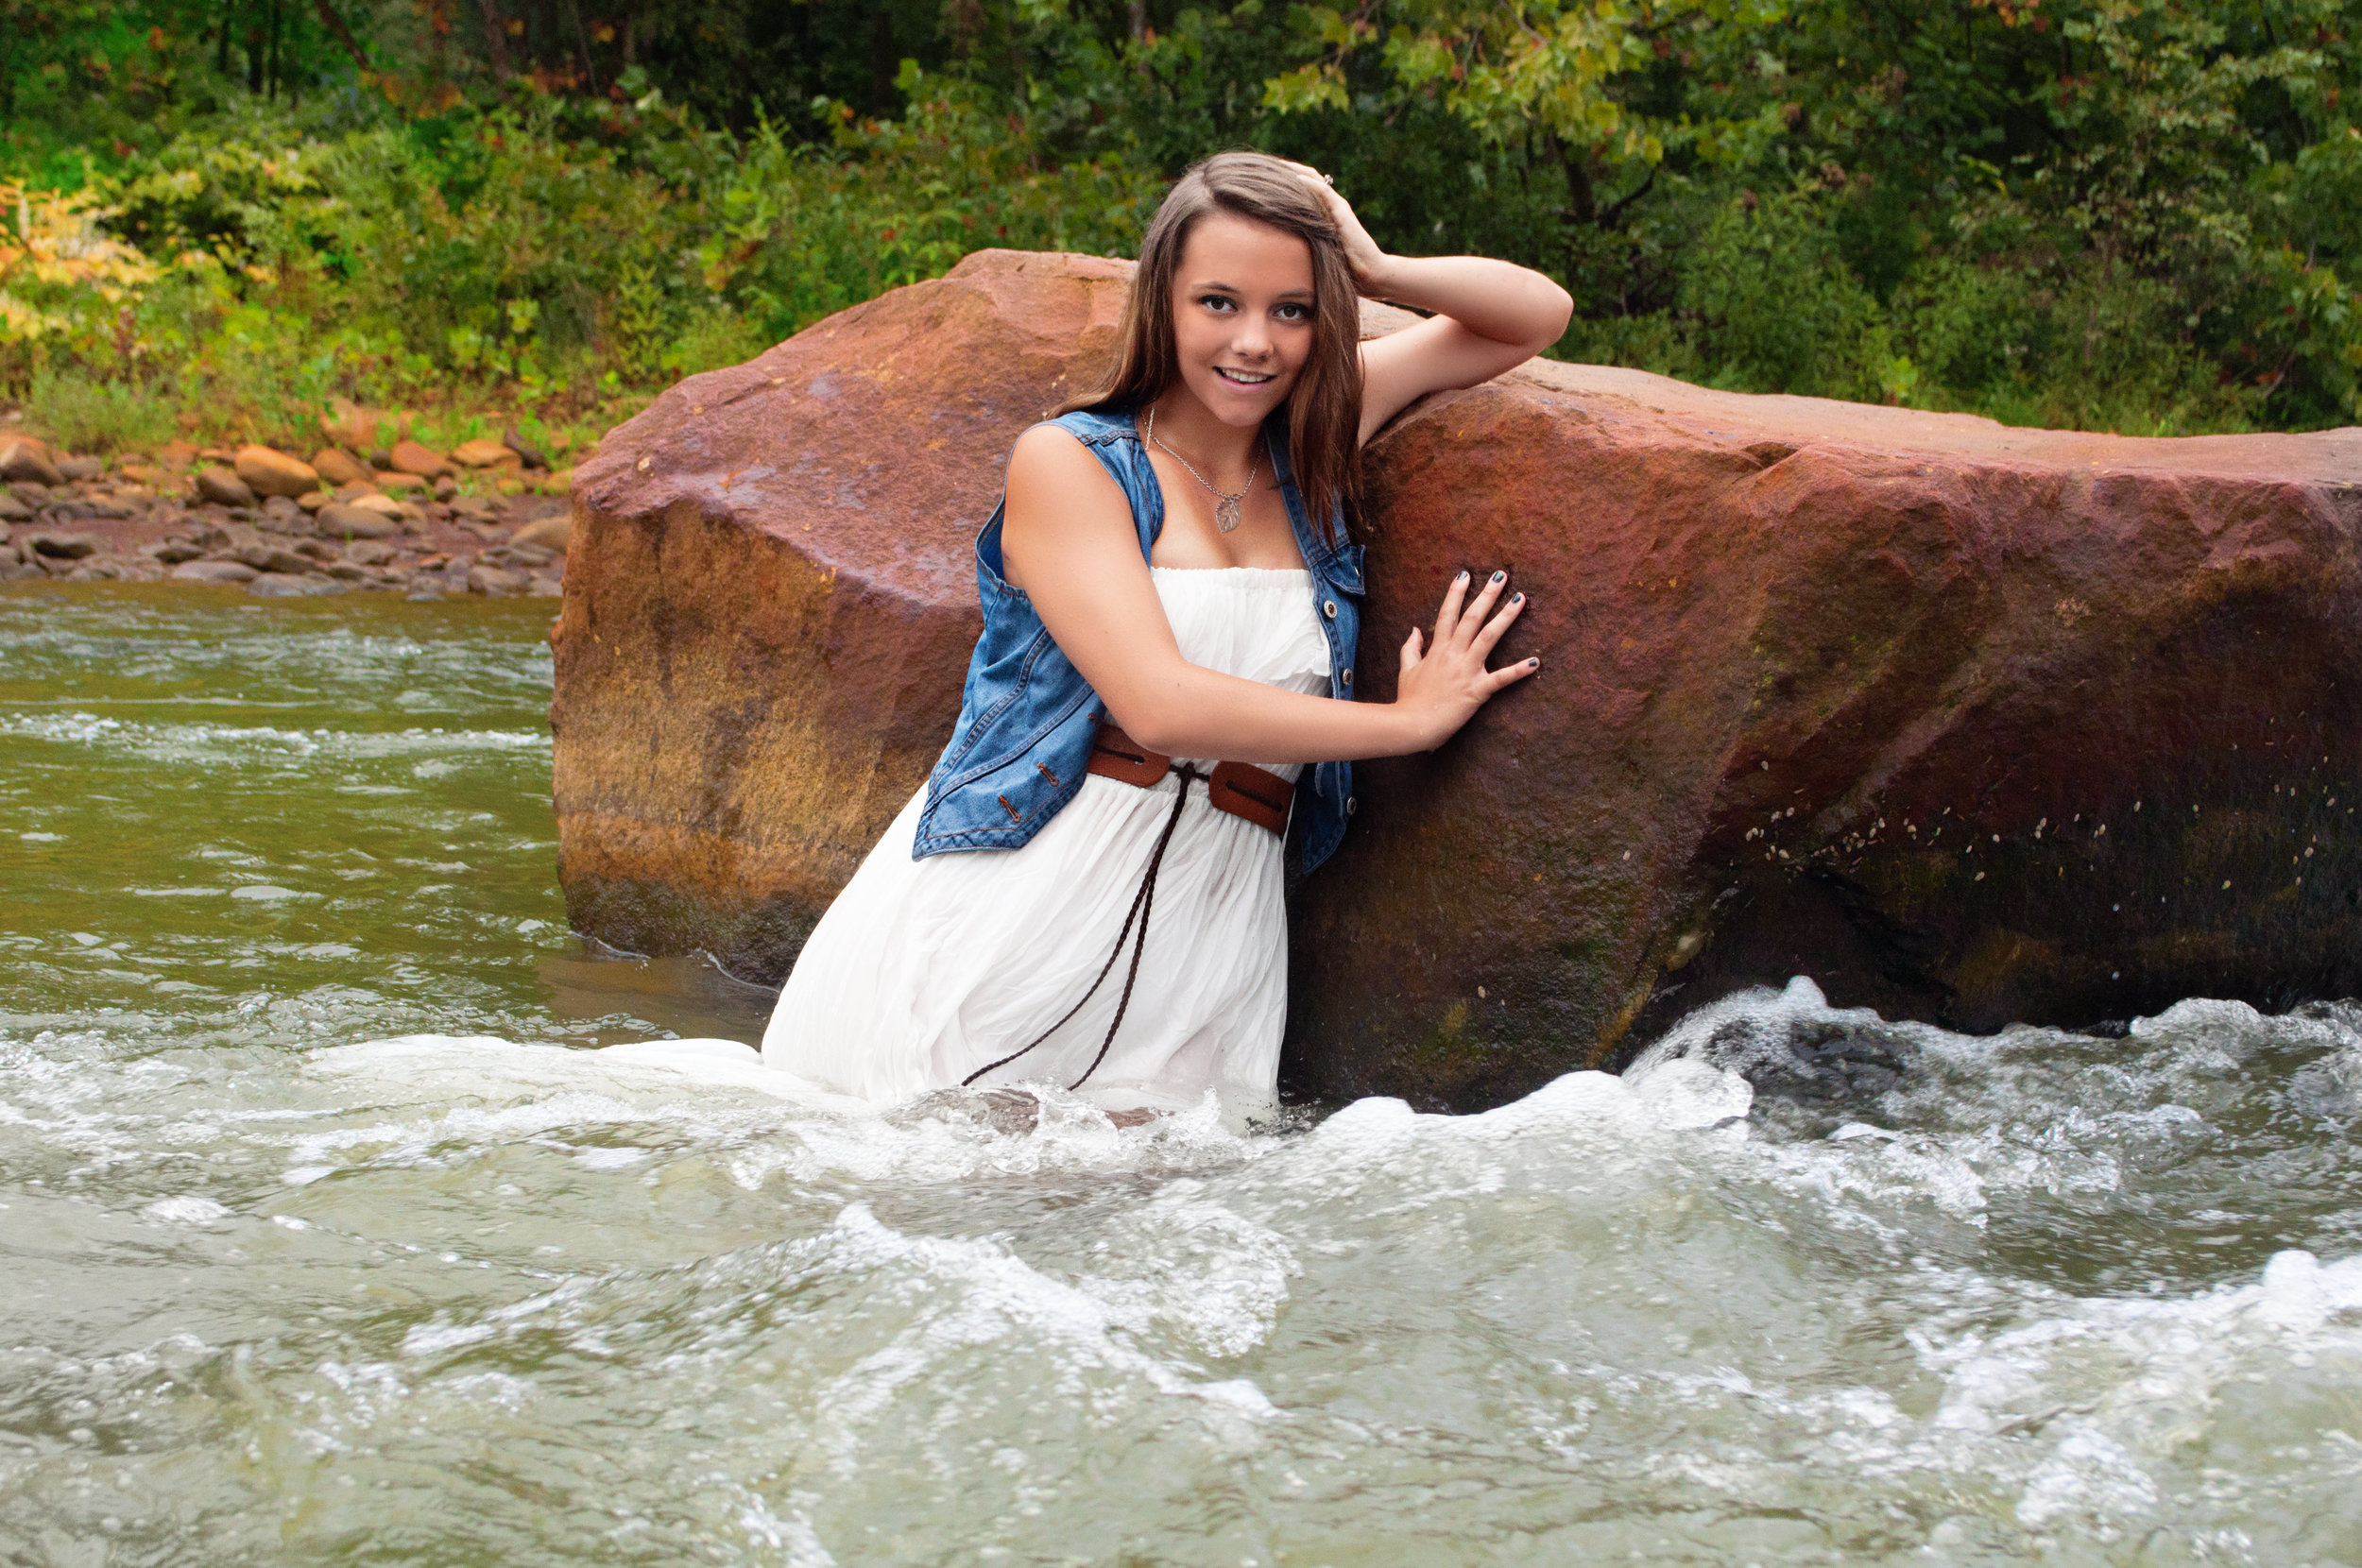 high school senior model standing in water by rocks for senior photos